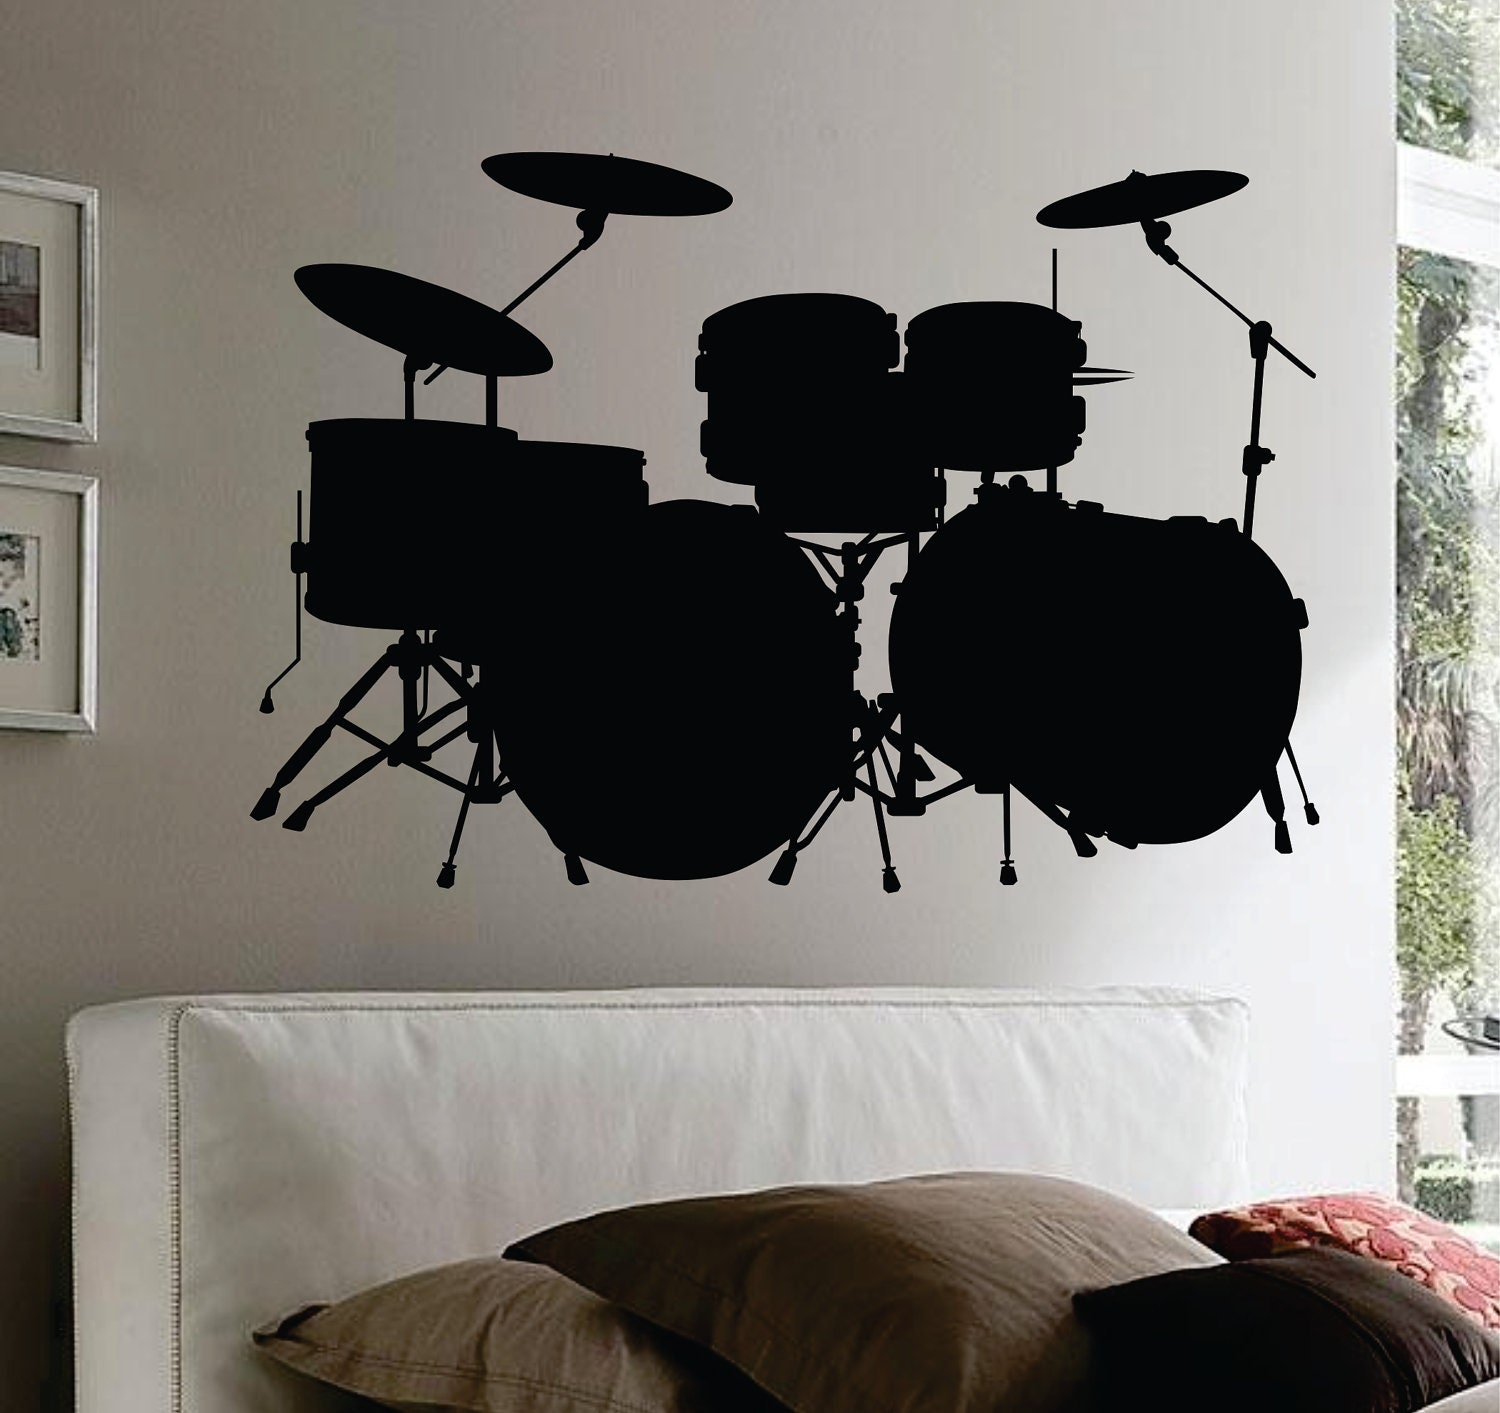 Drum Set Wall Decor : Items similar to drum set wall mural decal sticker music